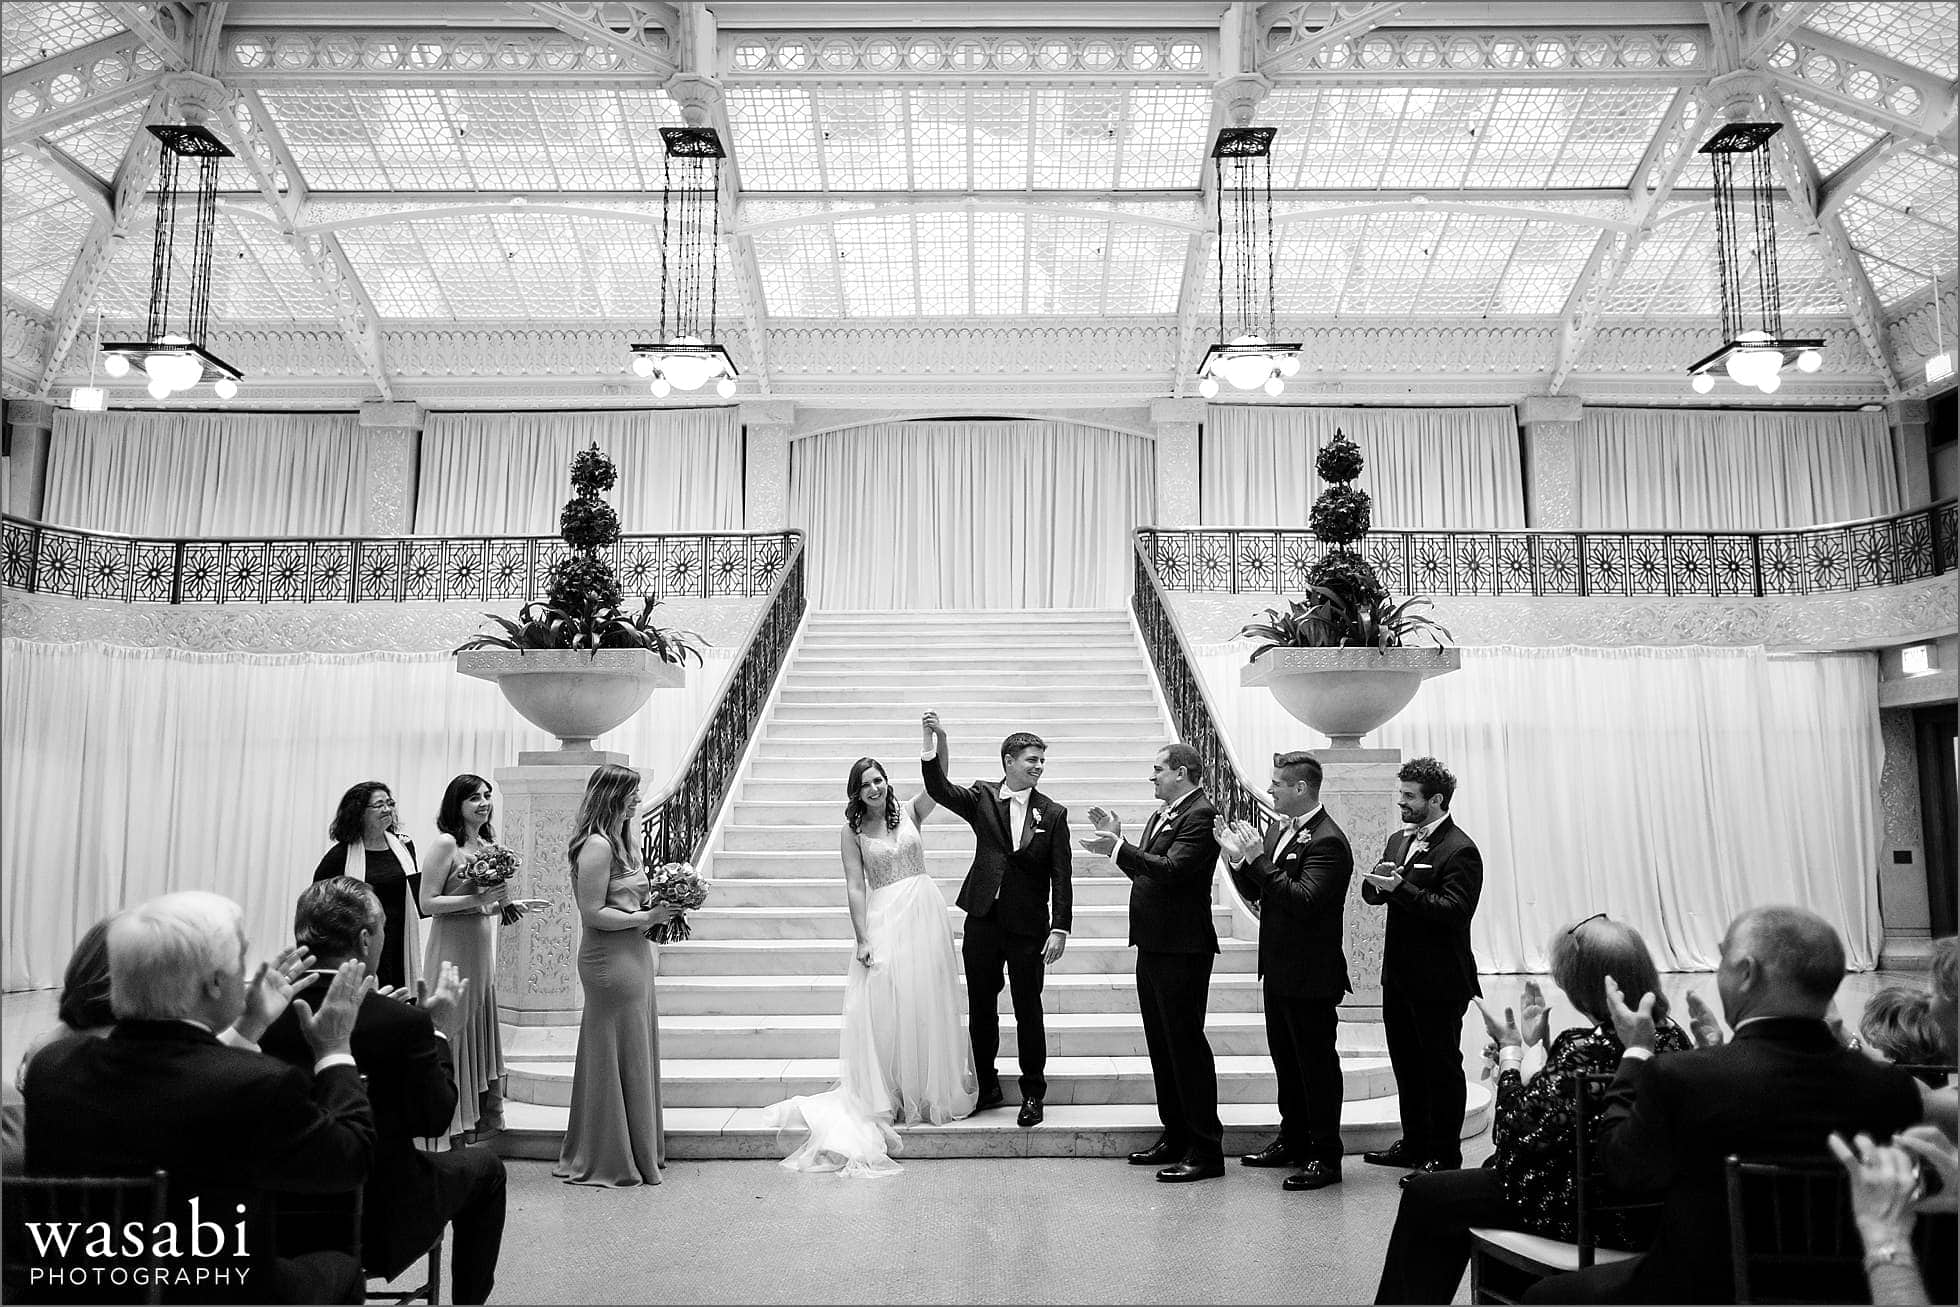 The Rookery Building wedding photos with wide angle view of bride and groom celebrating after being married at The Rookery Building in Chicago